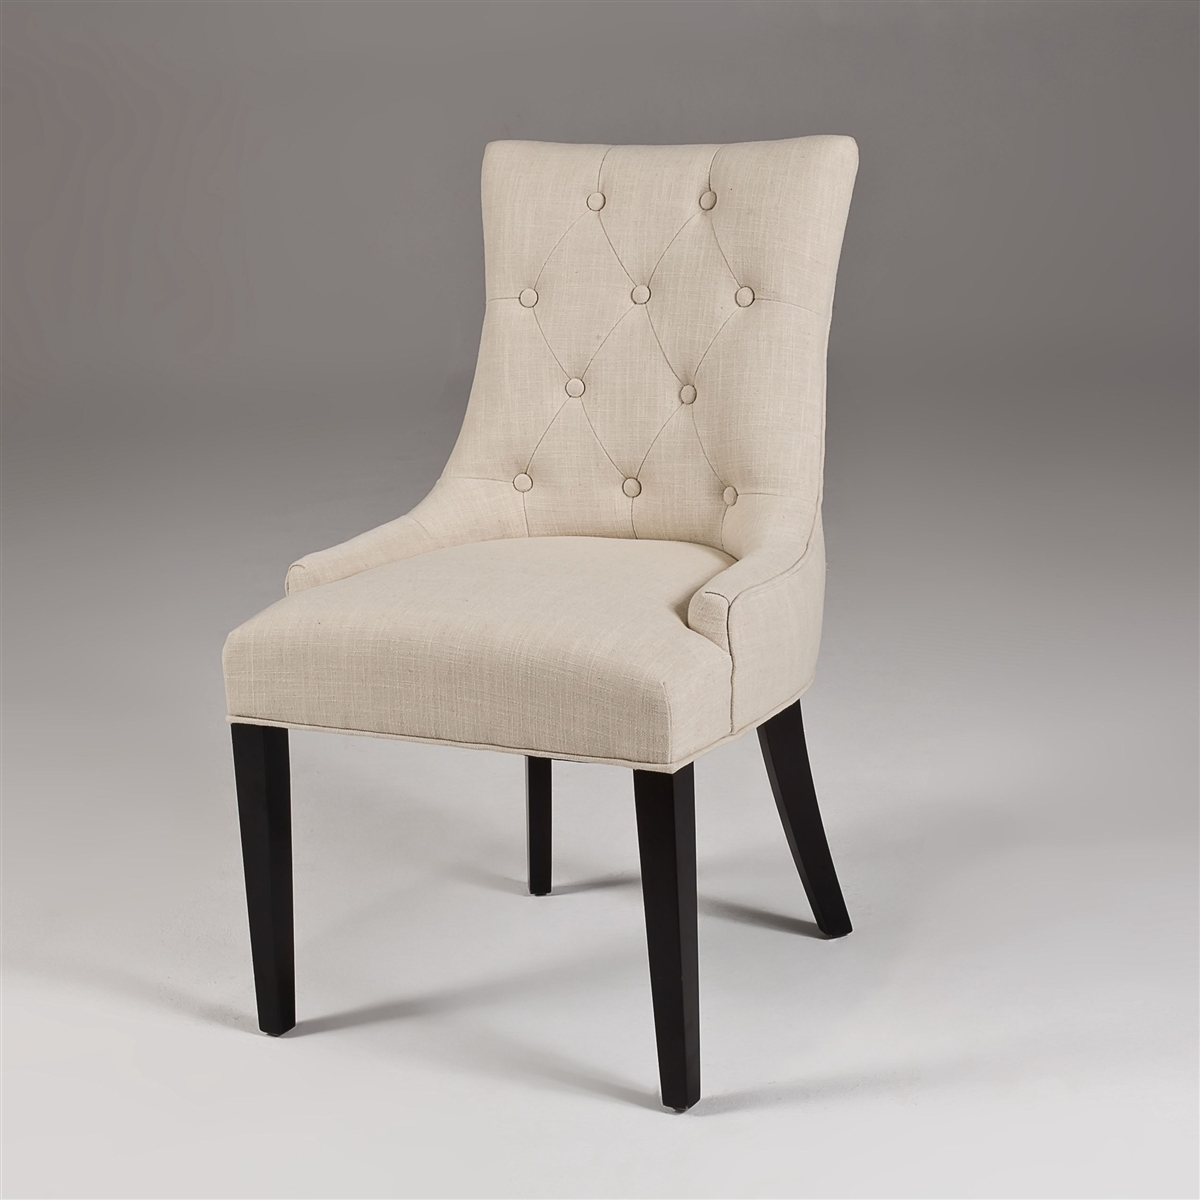 Marvelous Seriena La Rochelle White Beige Linen Dining Chair With Tufted Back Barrel Curved Back Fully Assembled Ncnpc Chair Design For Home Ncnpcorg